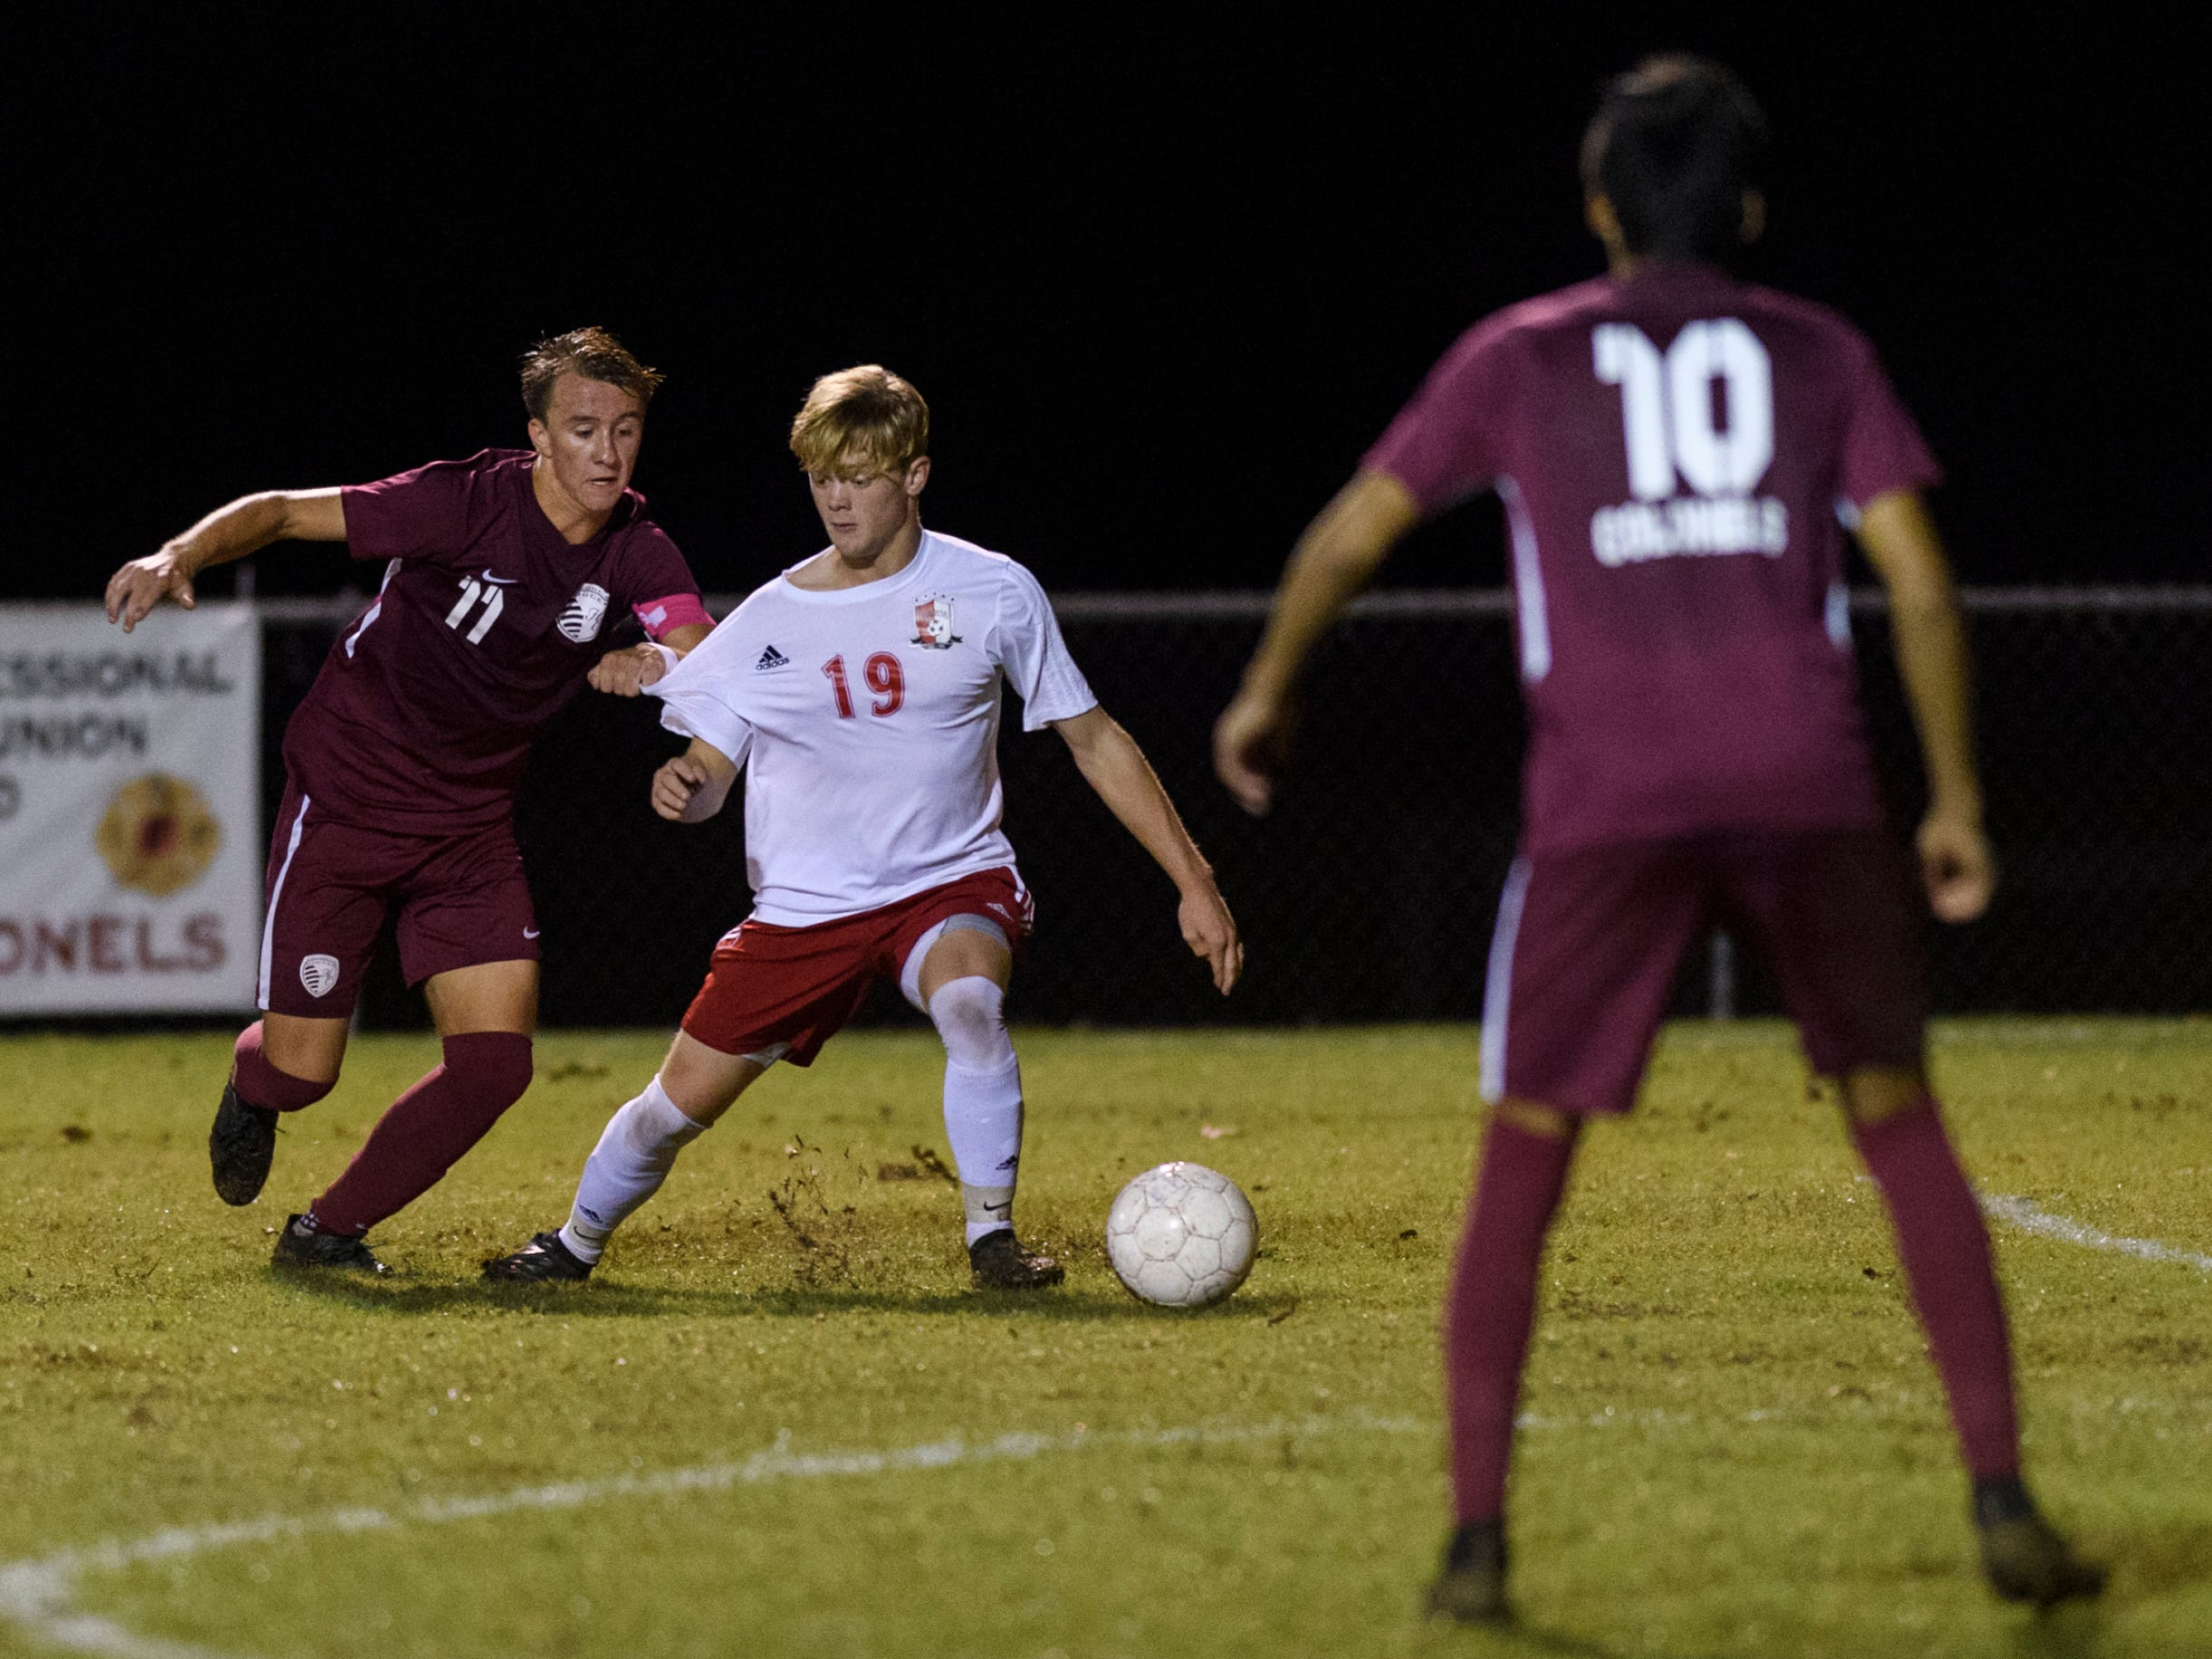 Henderson County's Max Wawrin (11) attempts to make a steal from Daviess County's Hayden Glover (19) during the second half at Colonel Field in Henderson, Ky., Thursday, Sept. 27, 2018. The Panthers defeated the Colonels 5-3.